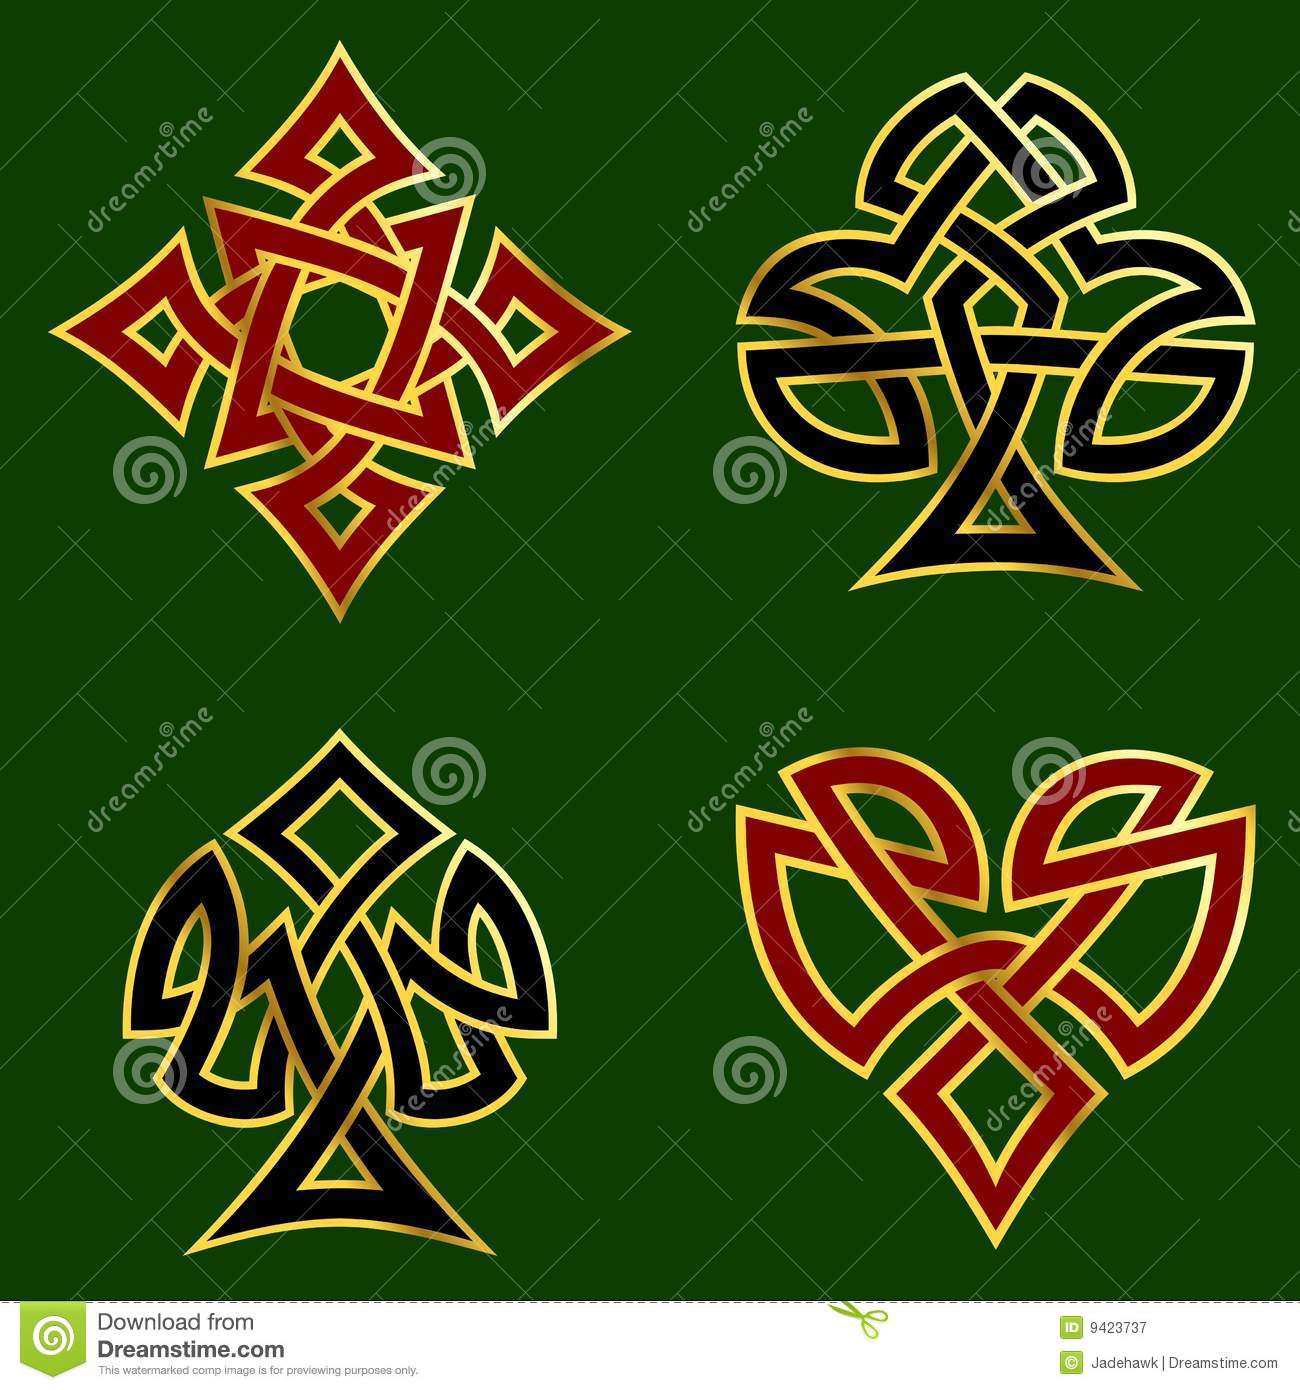 Knotwork Card Suits Stock Vector Illustration Of Ideas And Designs